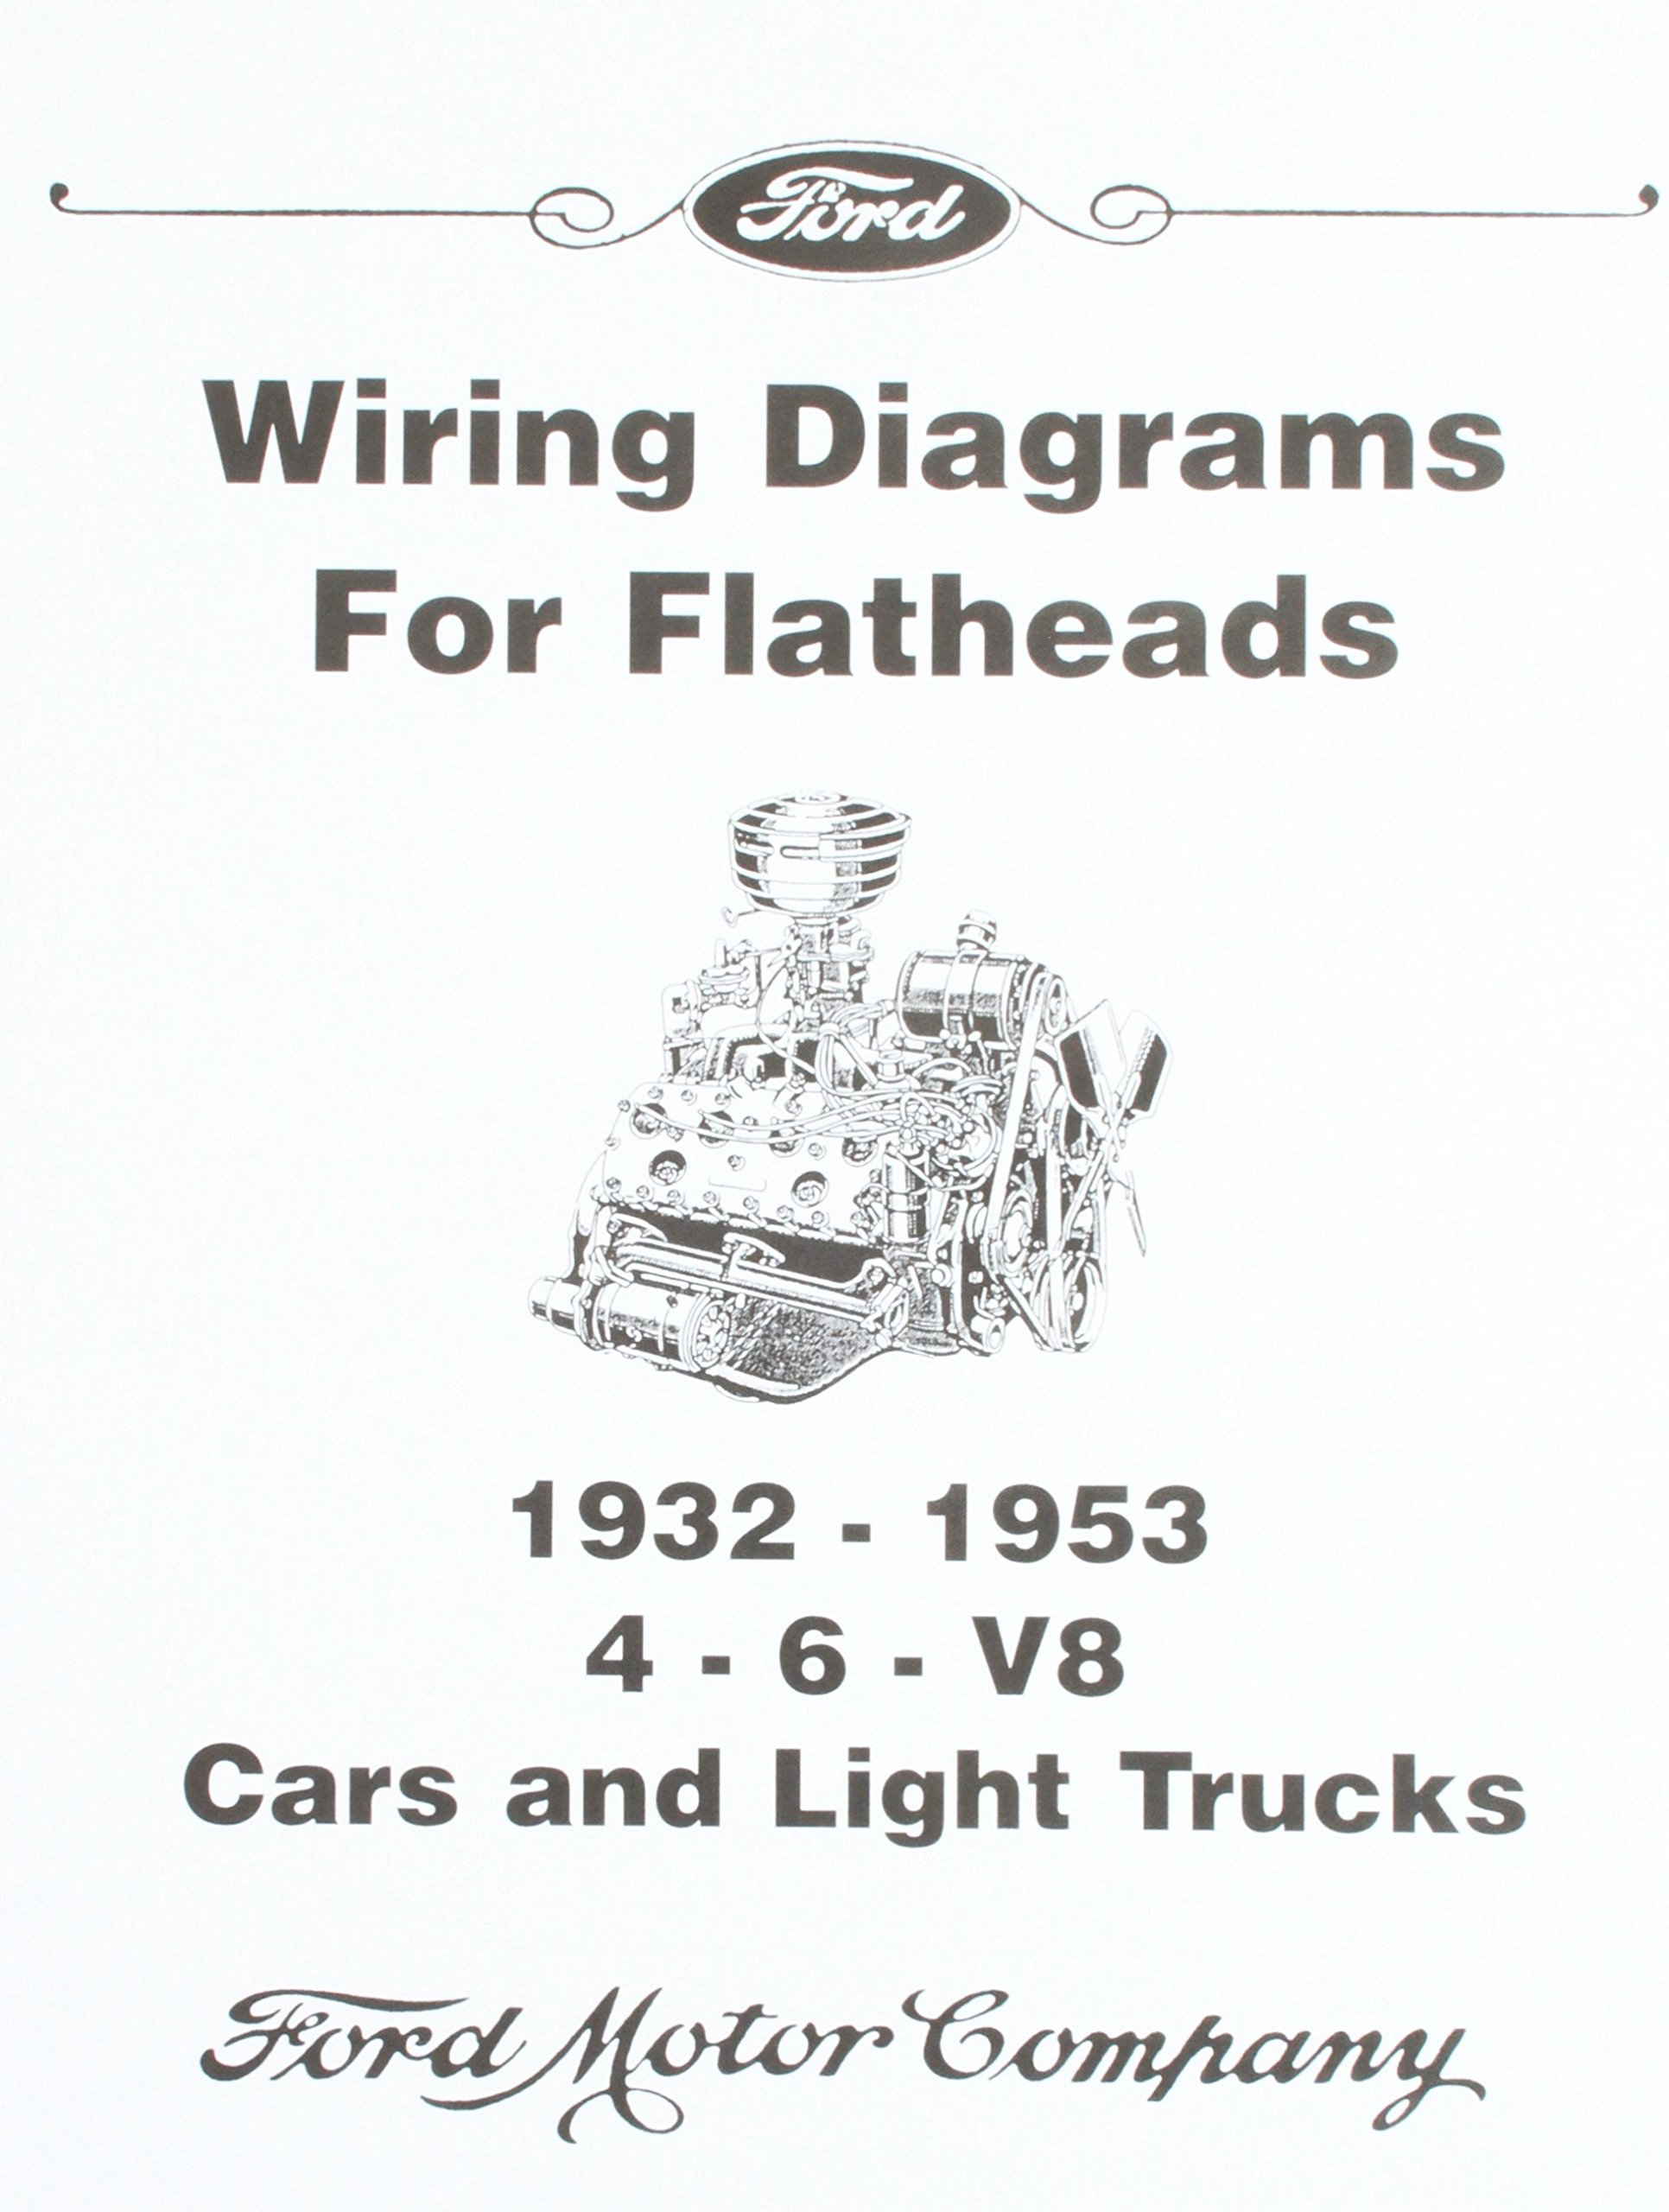 Wiring Diagrams for Ford Flatheads - 4, 6, V8 1932-1953: David Graham:  Amazon.com: Books